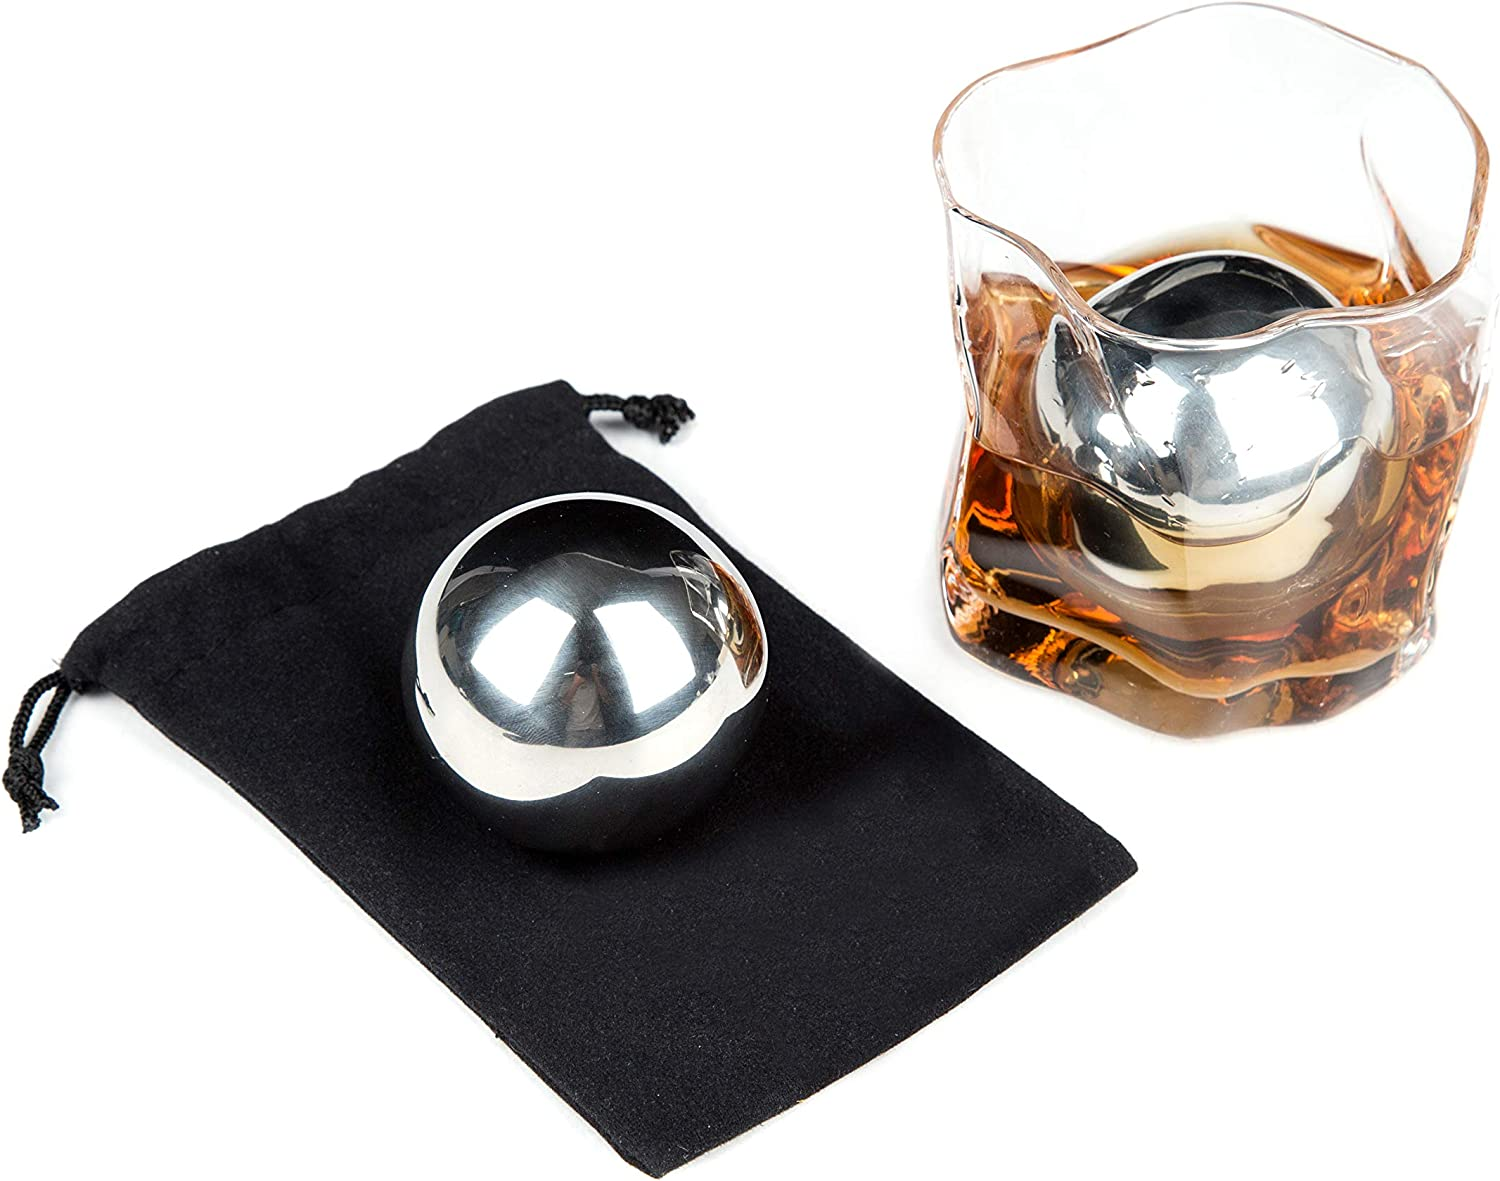 Portland Mall LUITON Save money Metal Stainless Steel Ice f Balls Reusable Stone Chilling